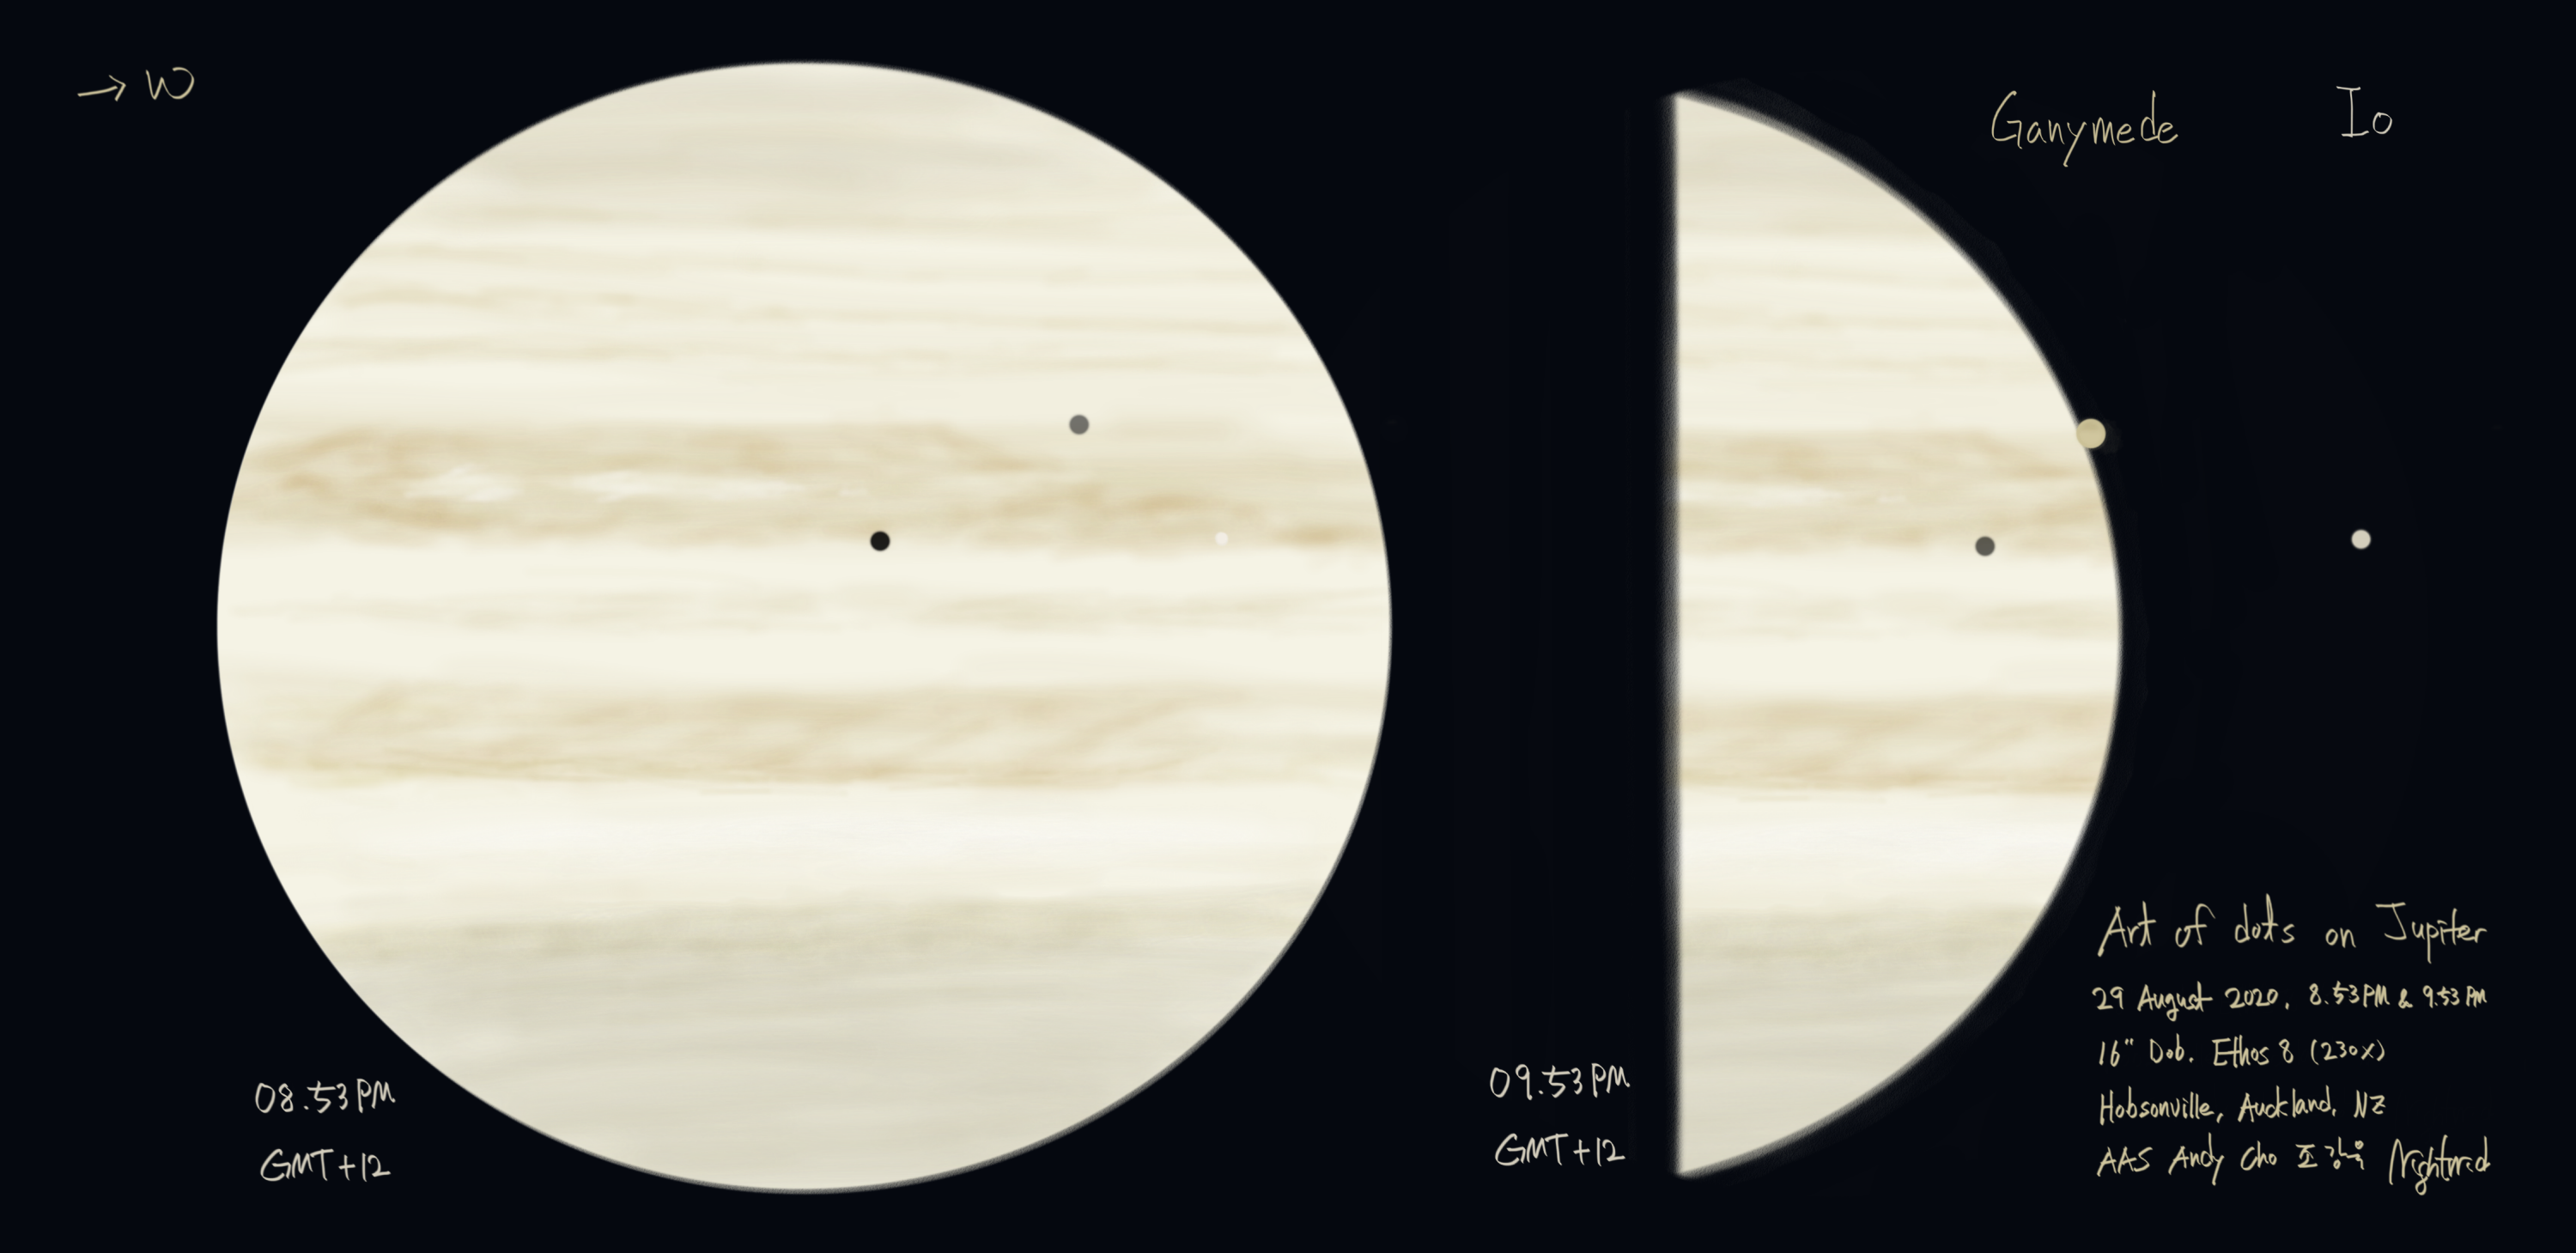 3000_Art of dots on Jupiter 29 August 2020.png